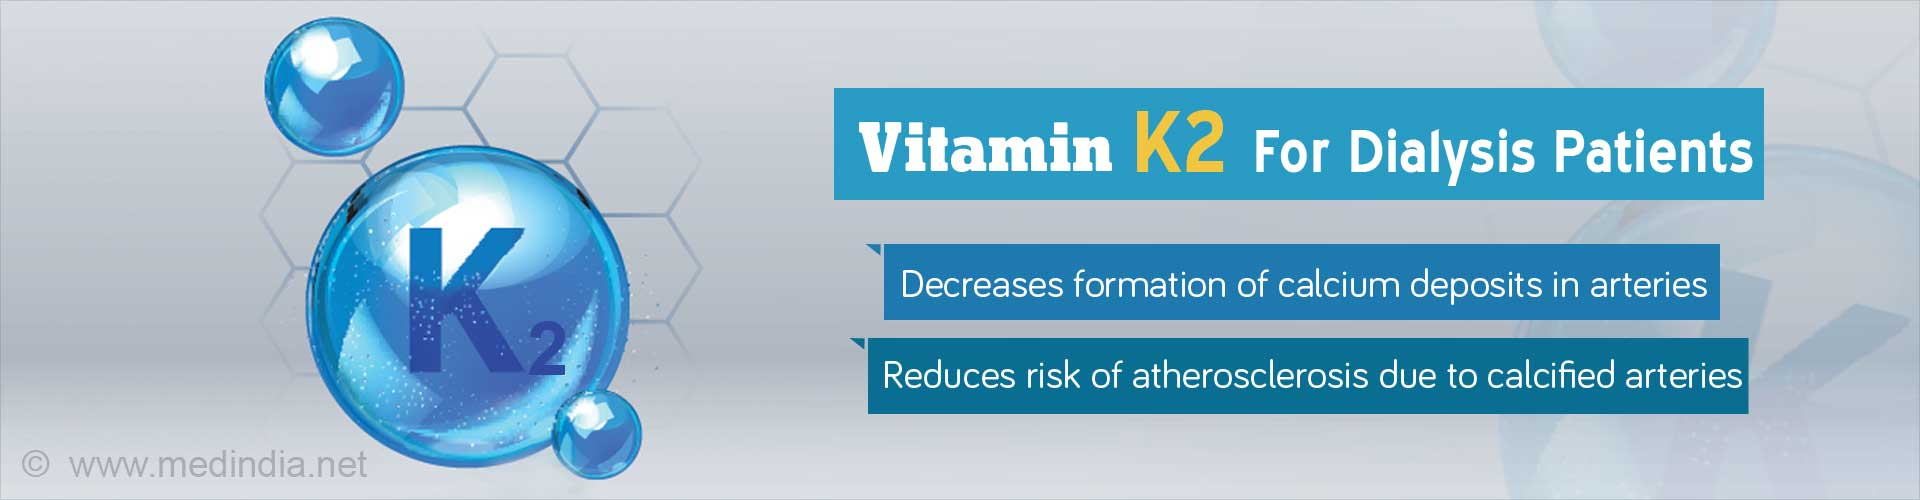 Vitamin K2 for Dialysis Patients